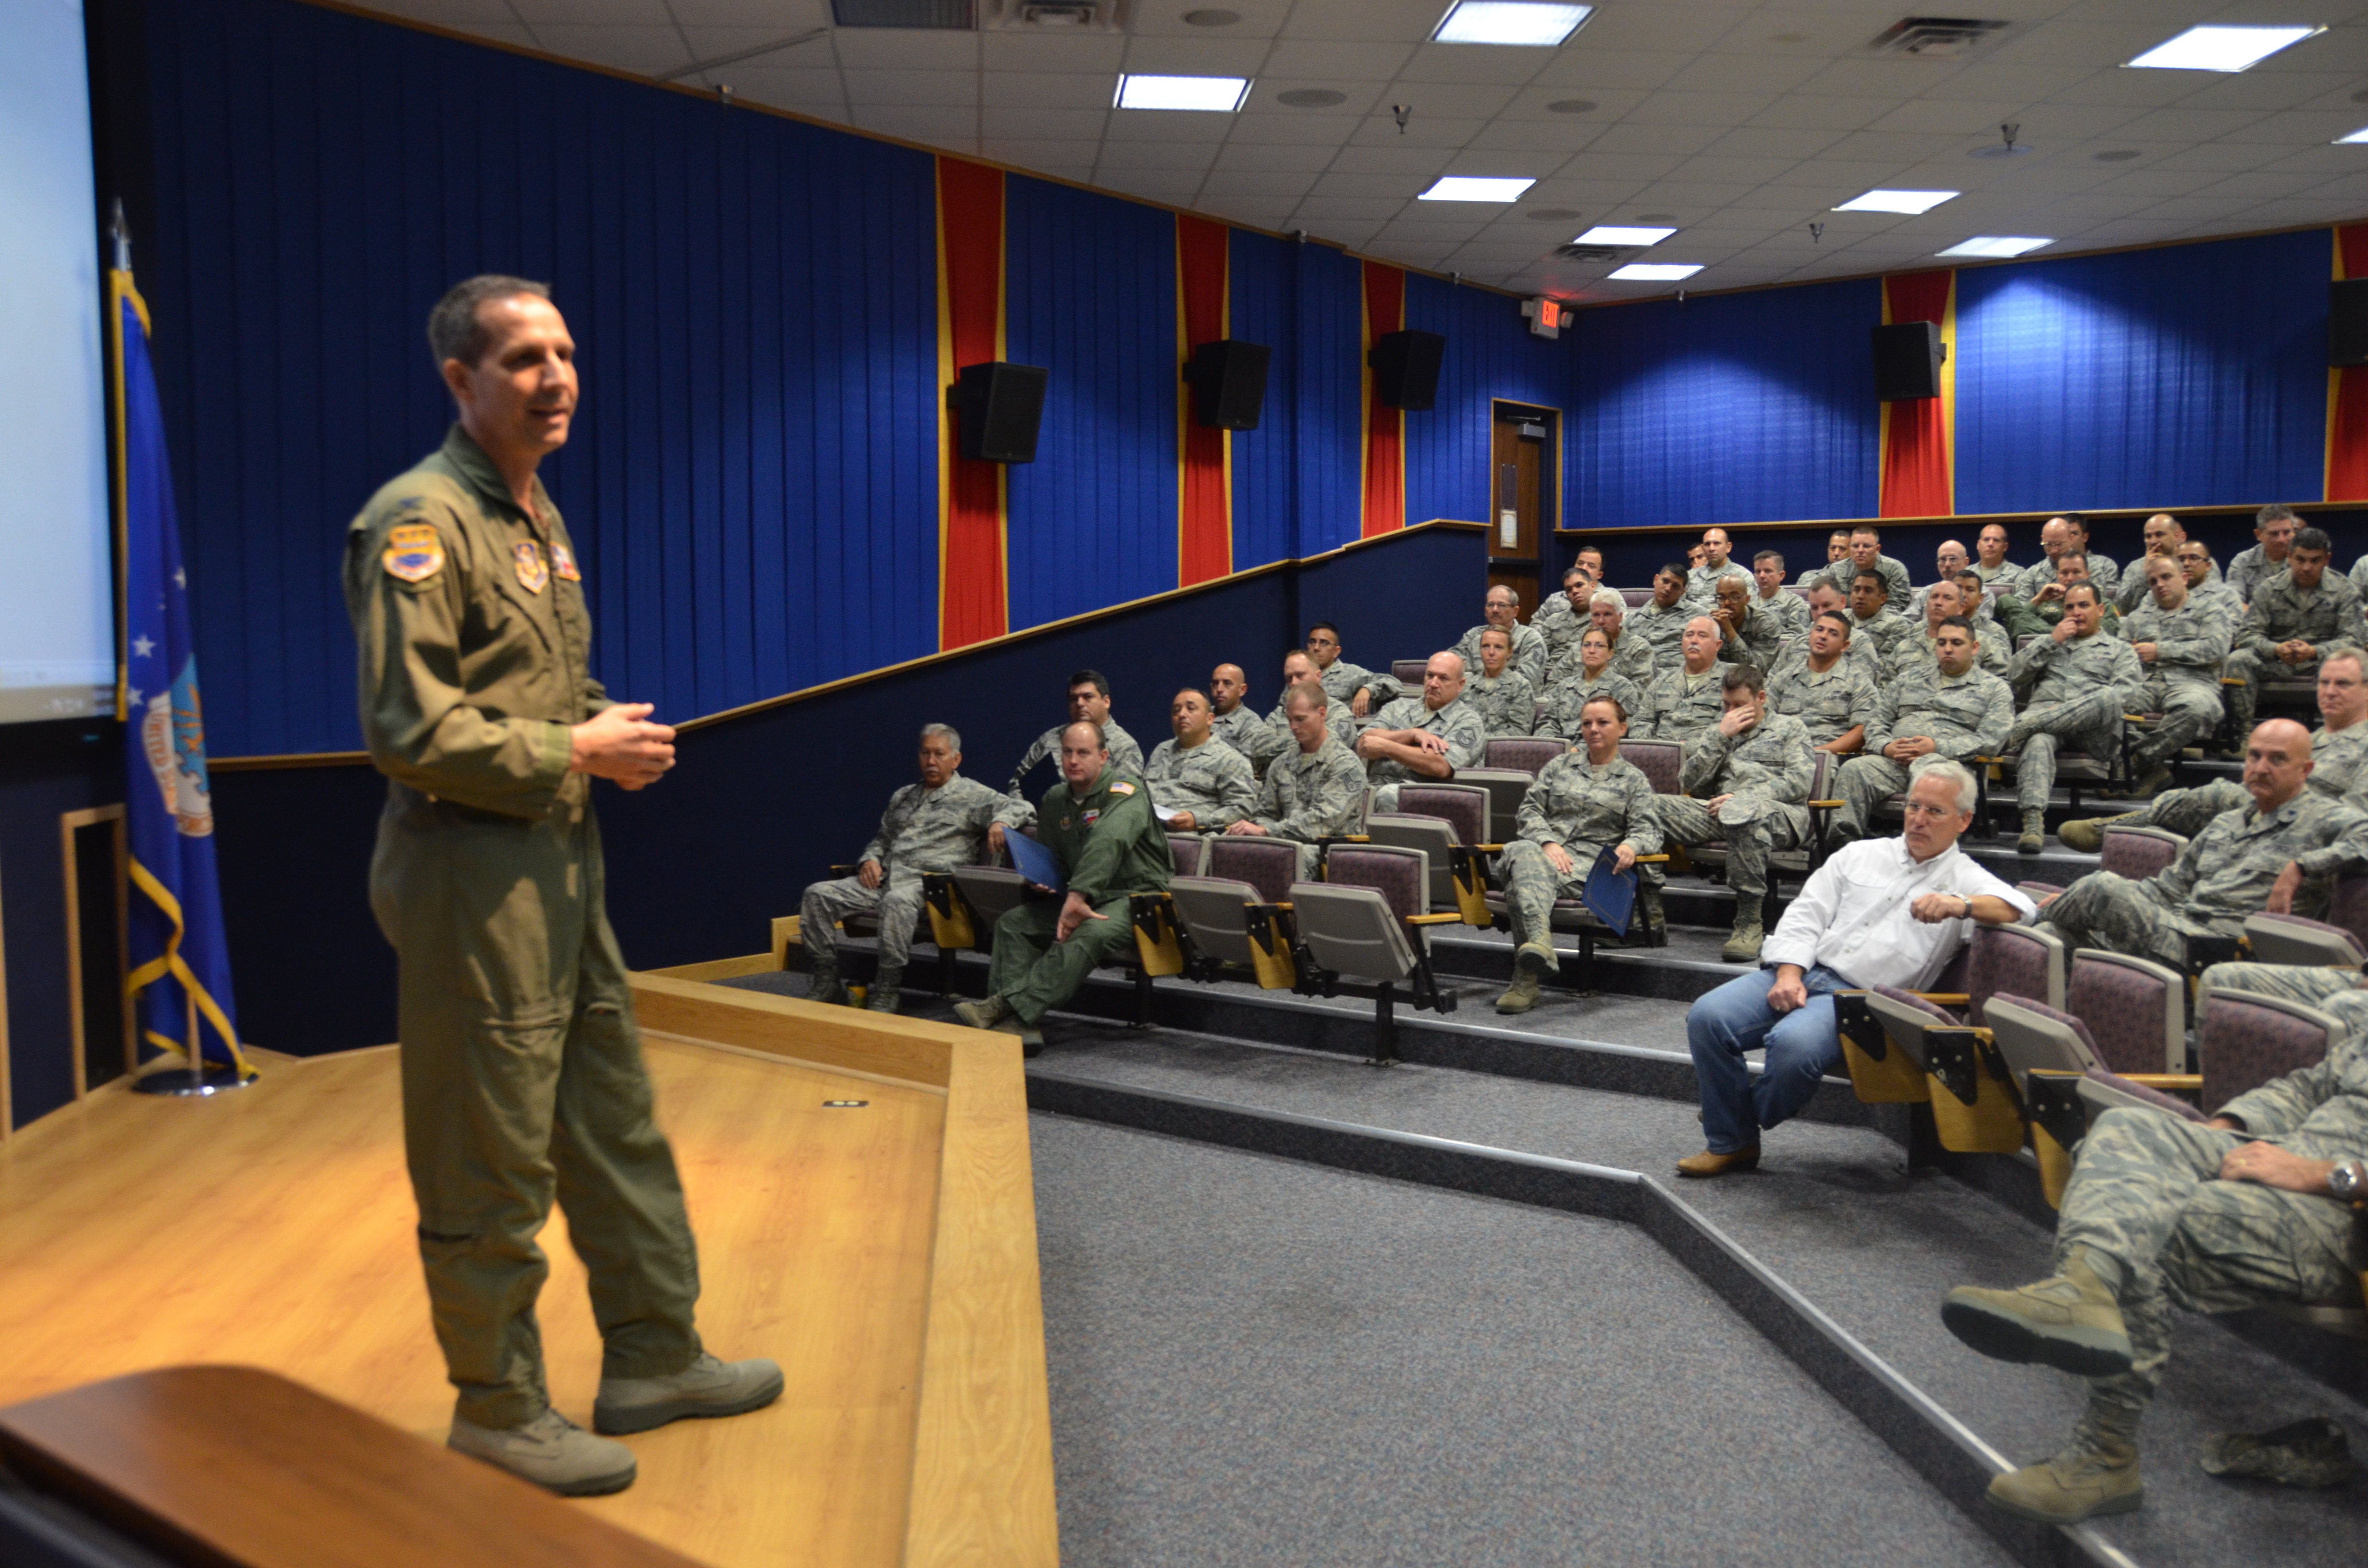 Col  Jeffrey Pennington covered a wide range of topics during his